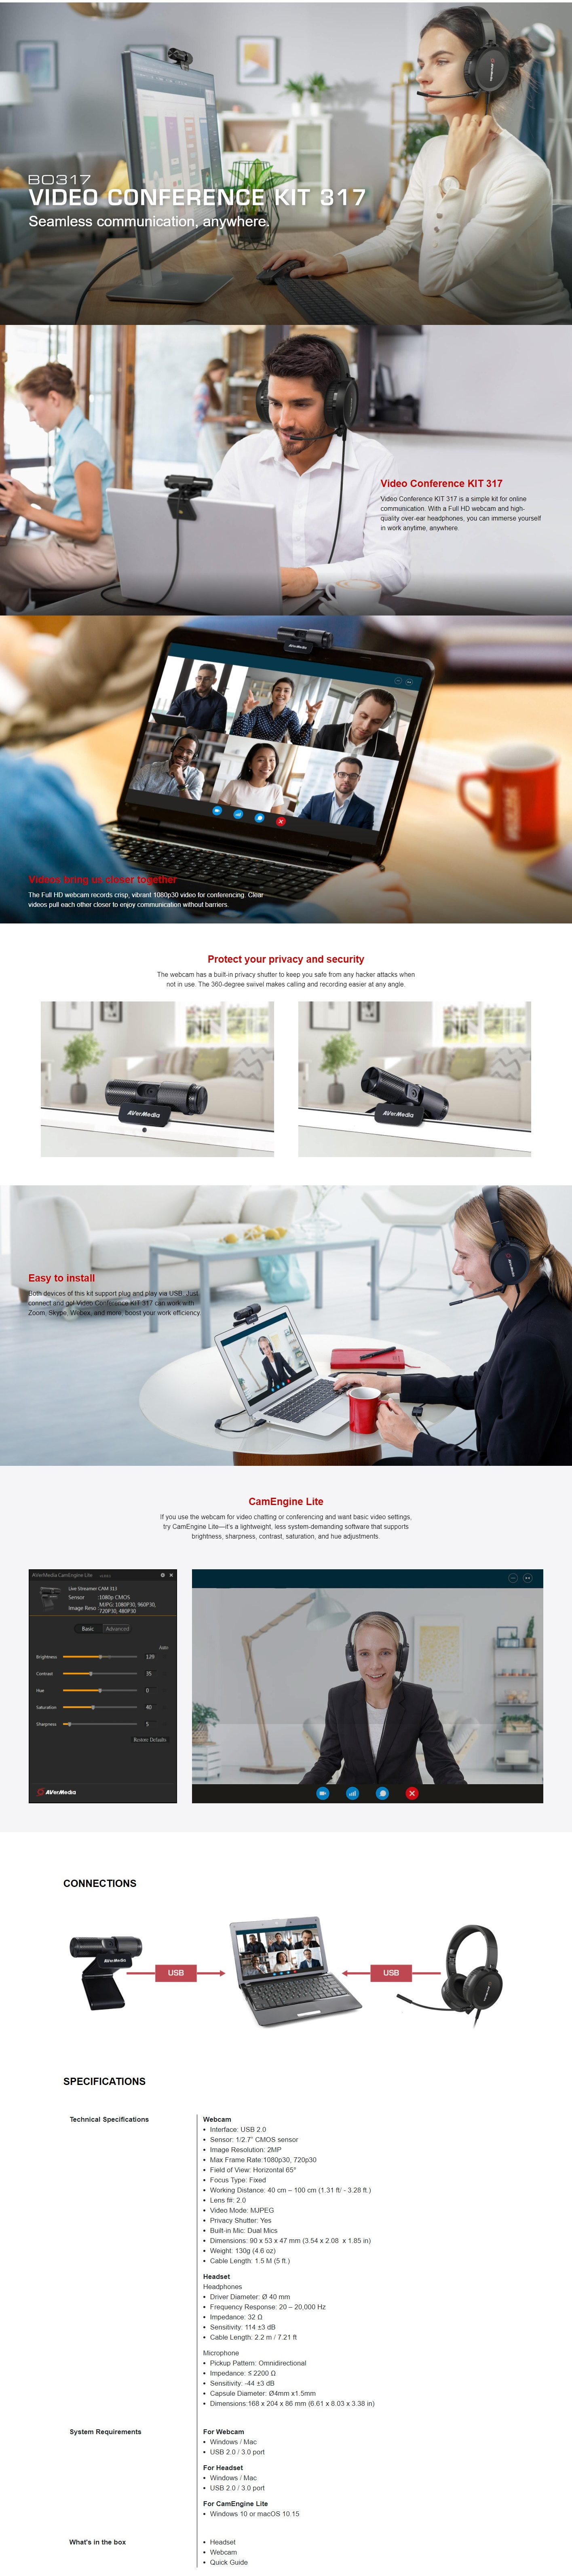 A large marketing image providing additional information about the product AVerMedia BO317 Webcam & Headset Kit - Additional alt info not provided